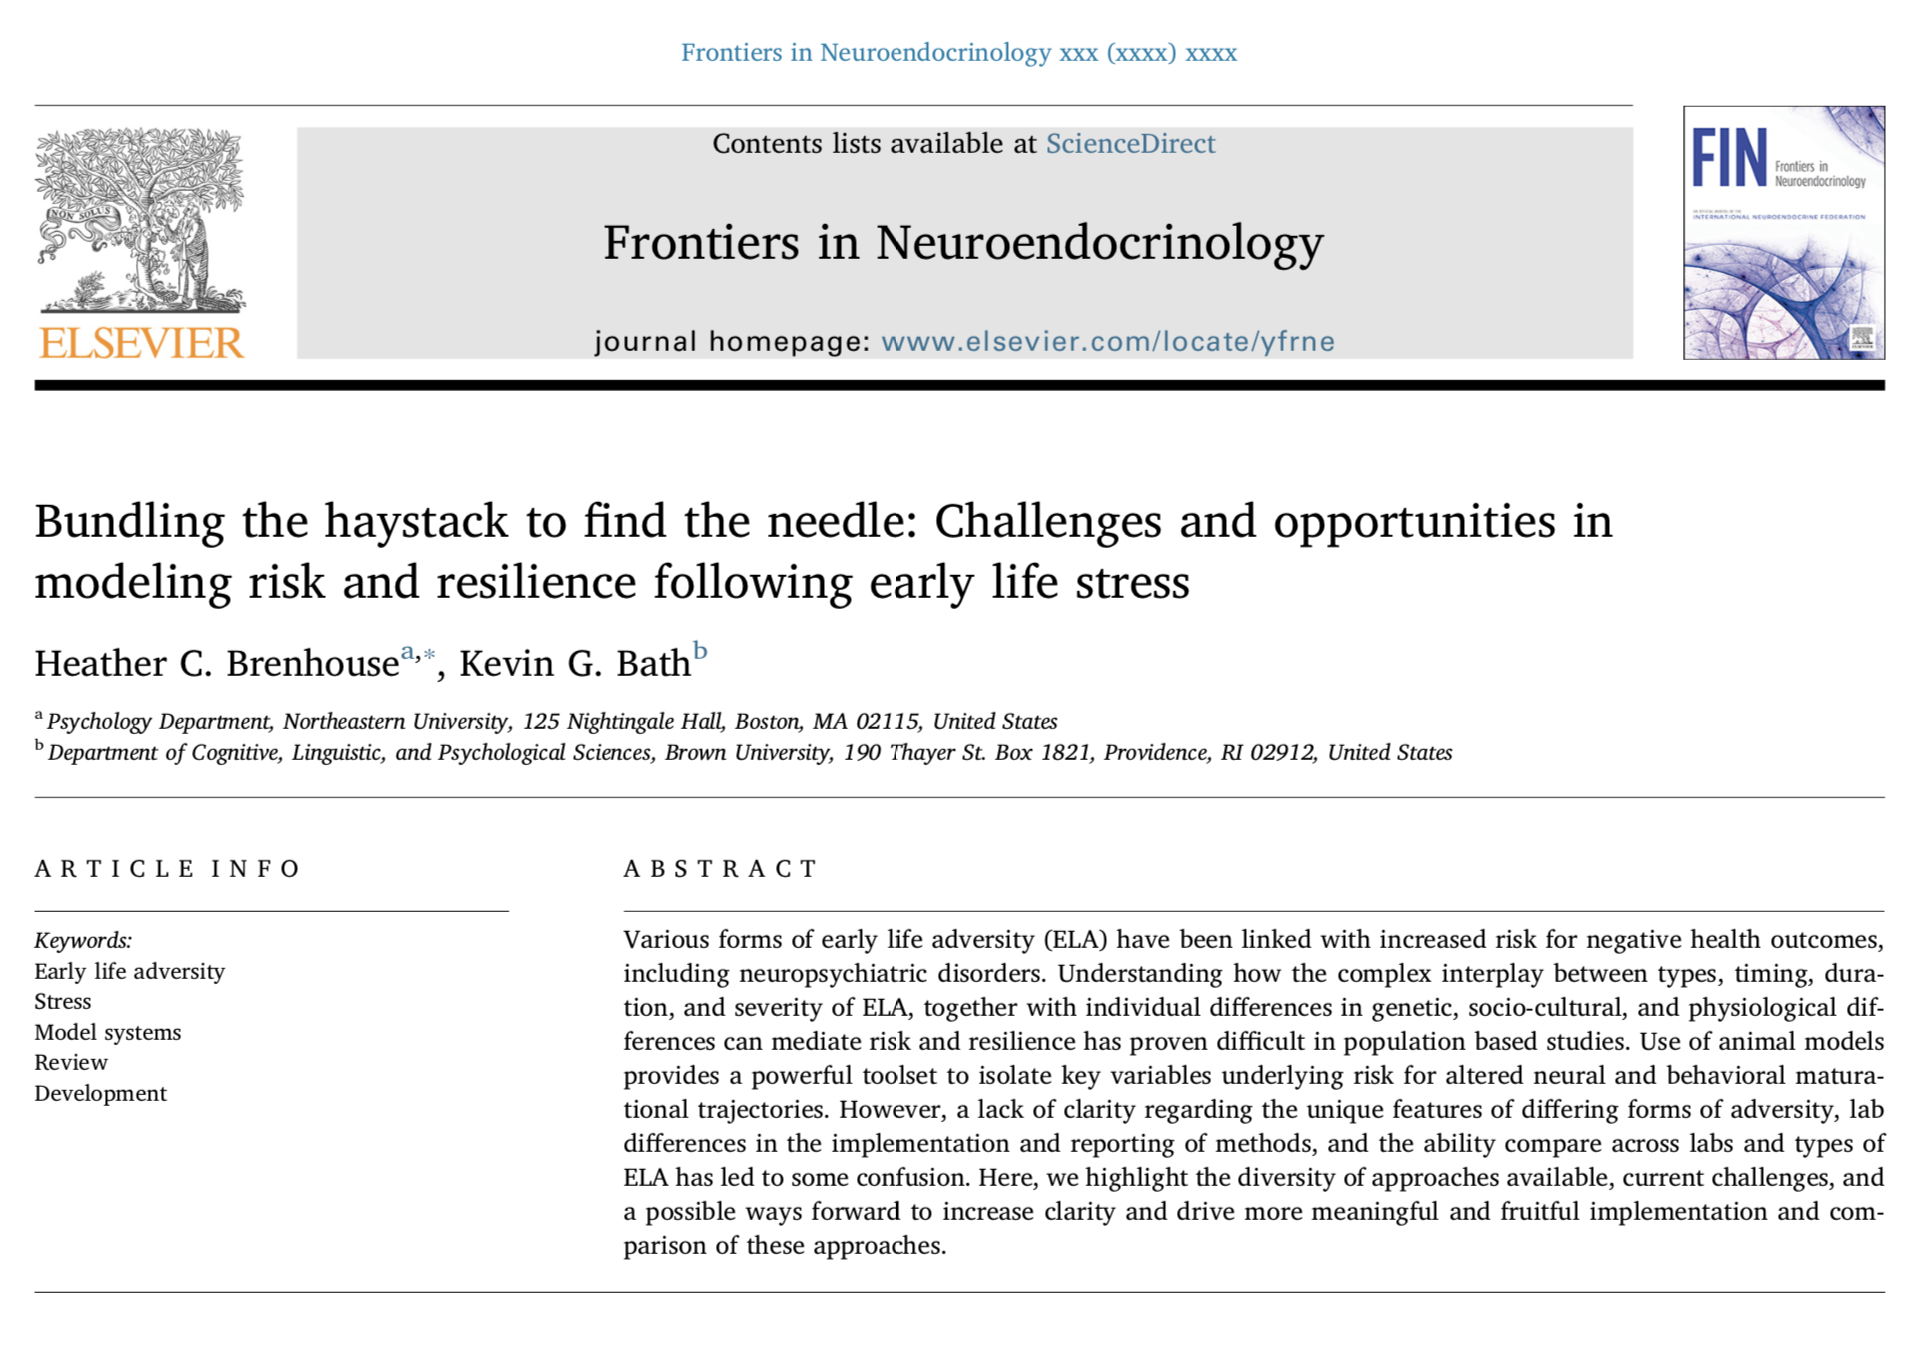 Brenhouse & Bath, 2019.   Frontiers in Neuroendocrinology.